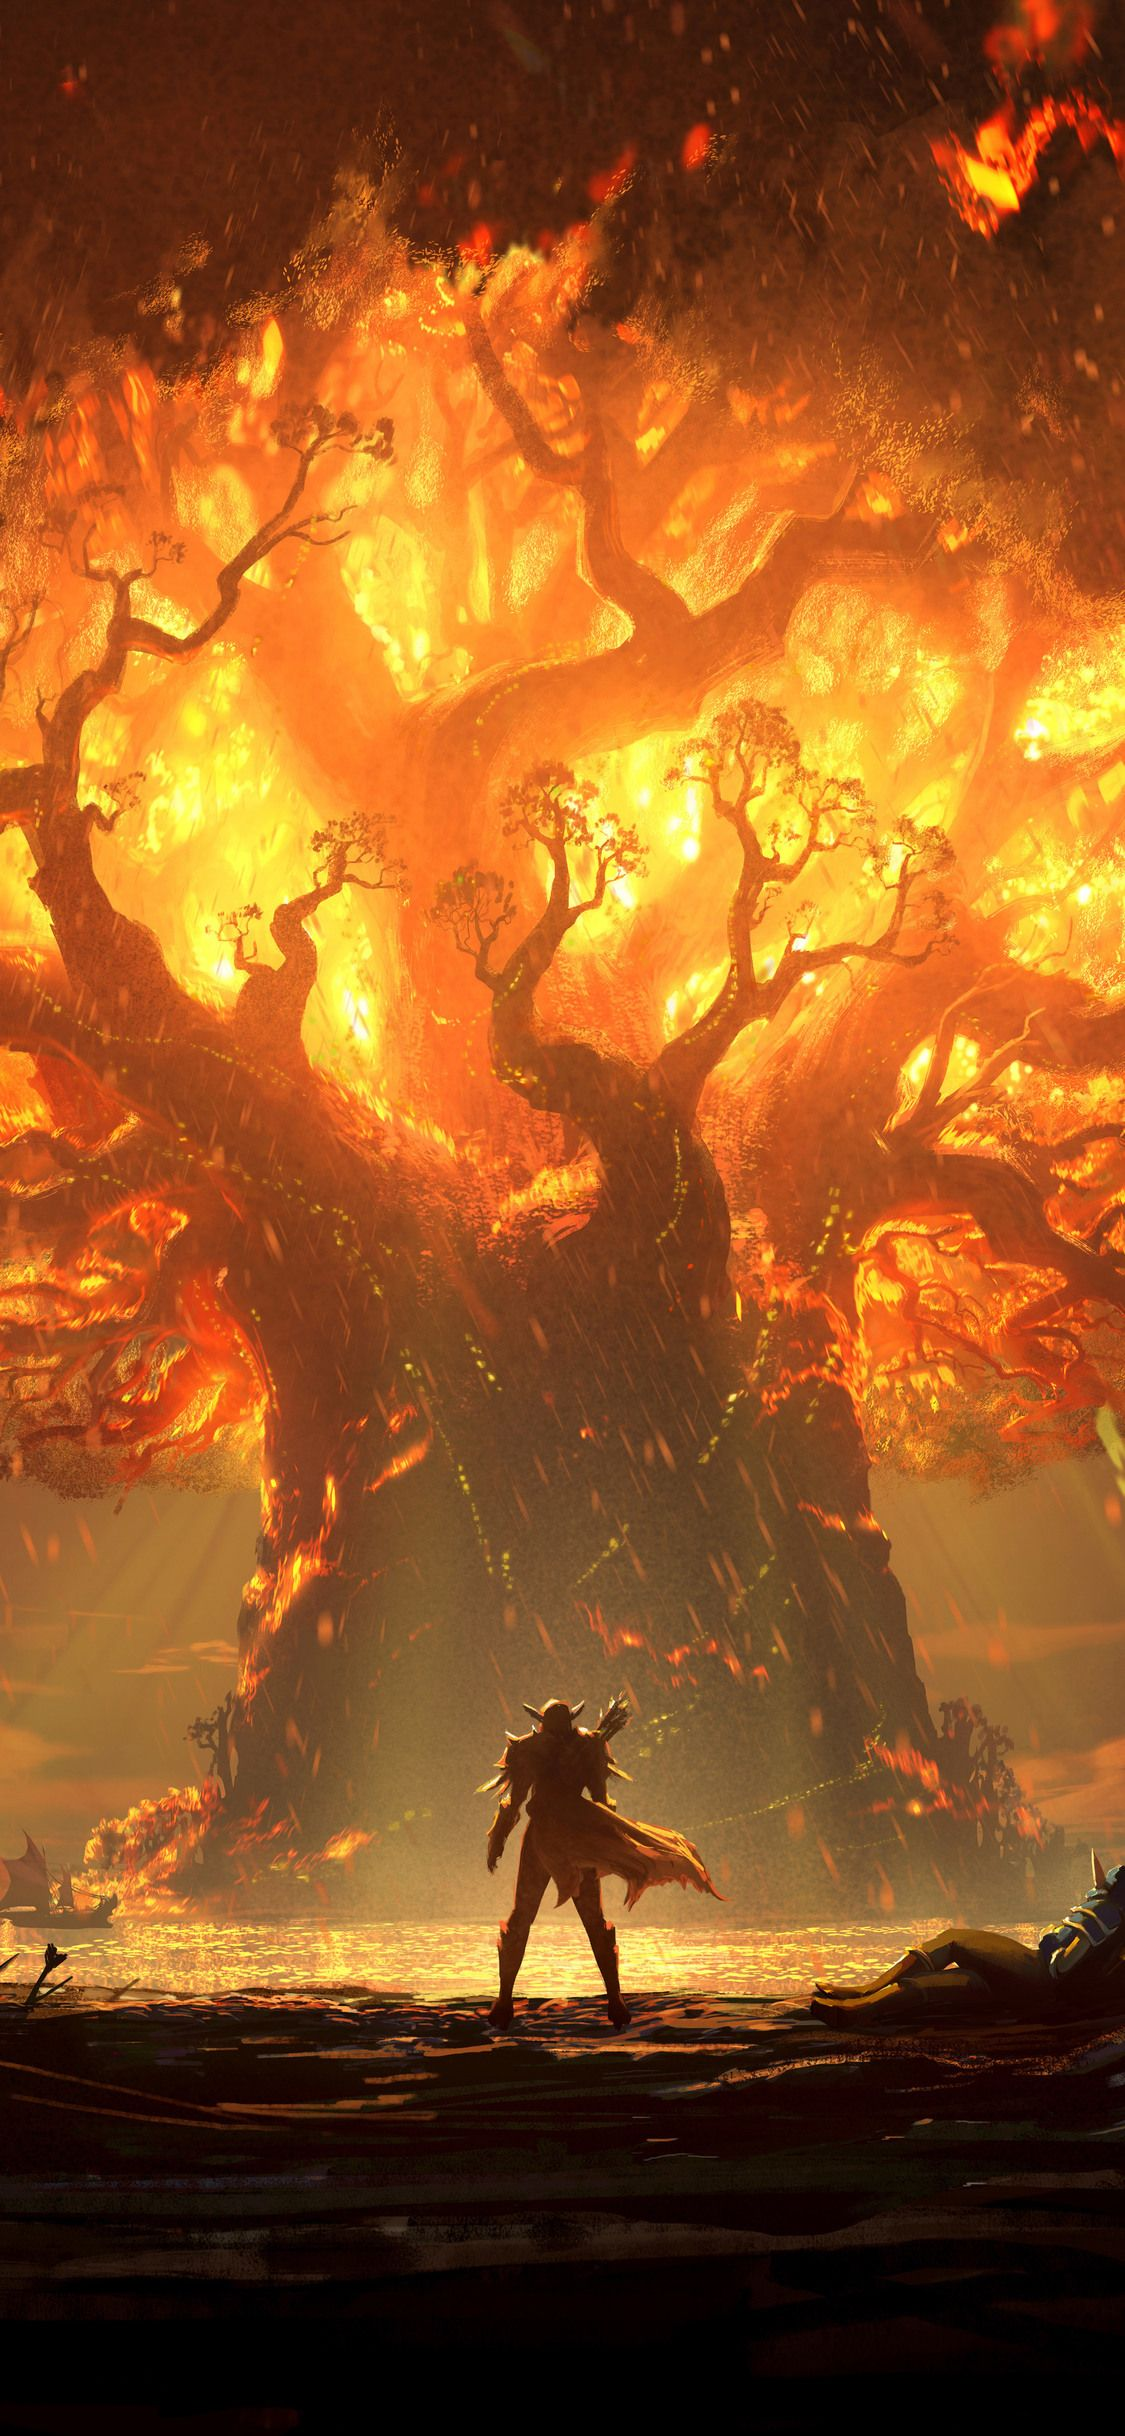 world of warcraft iphone x wallpaper